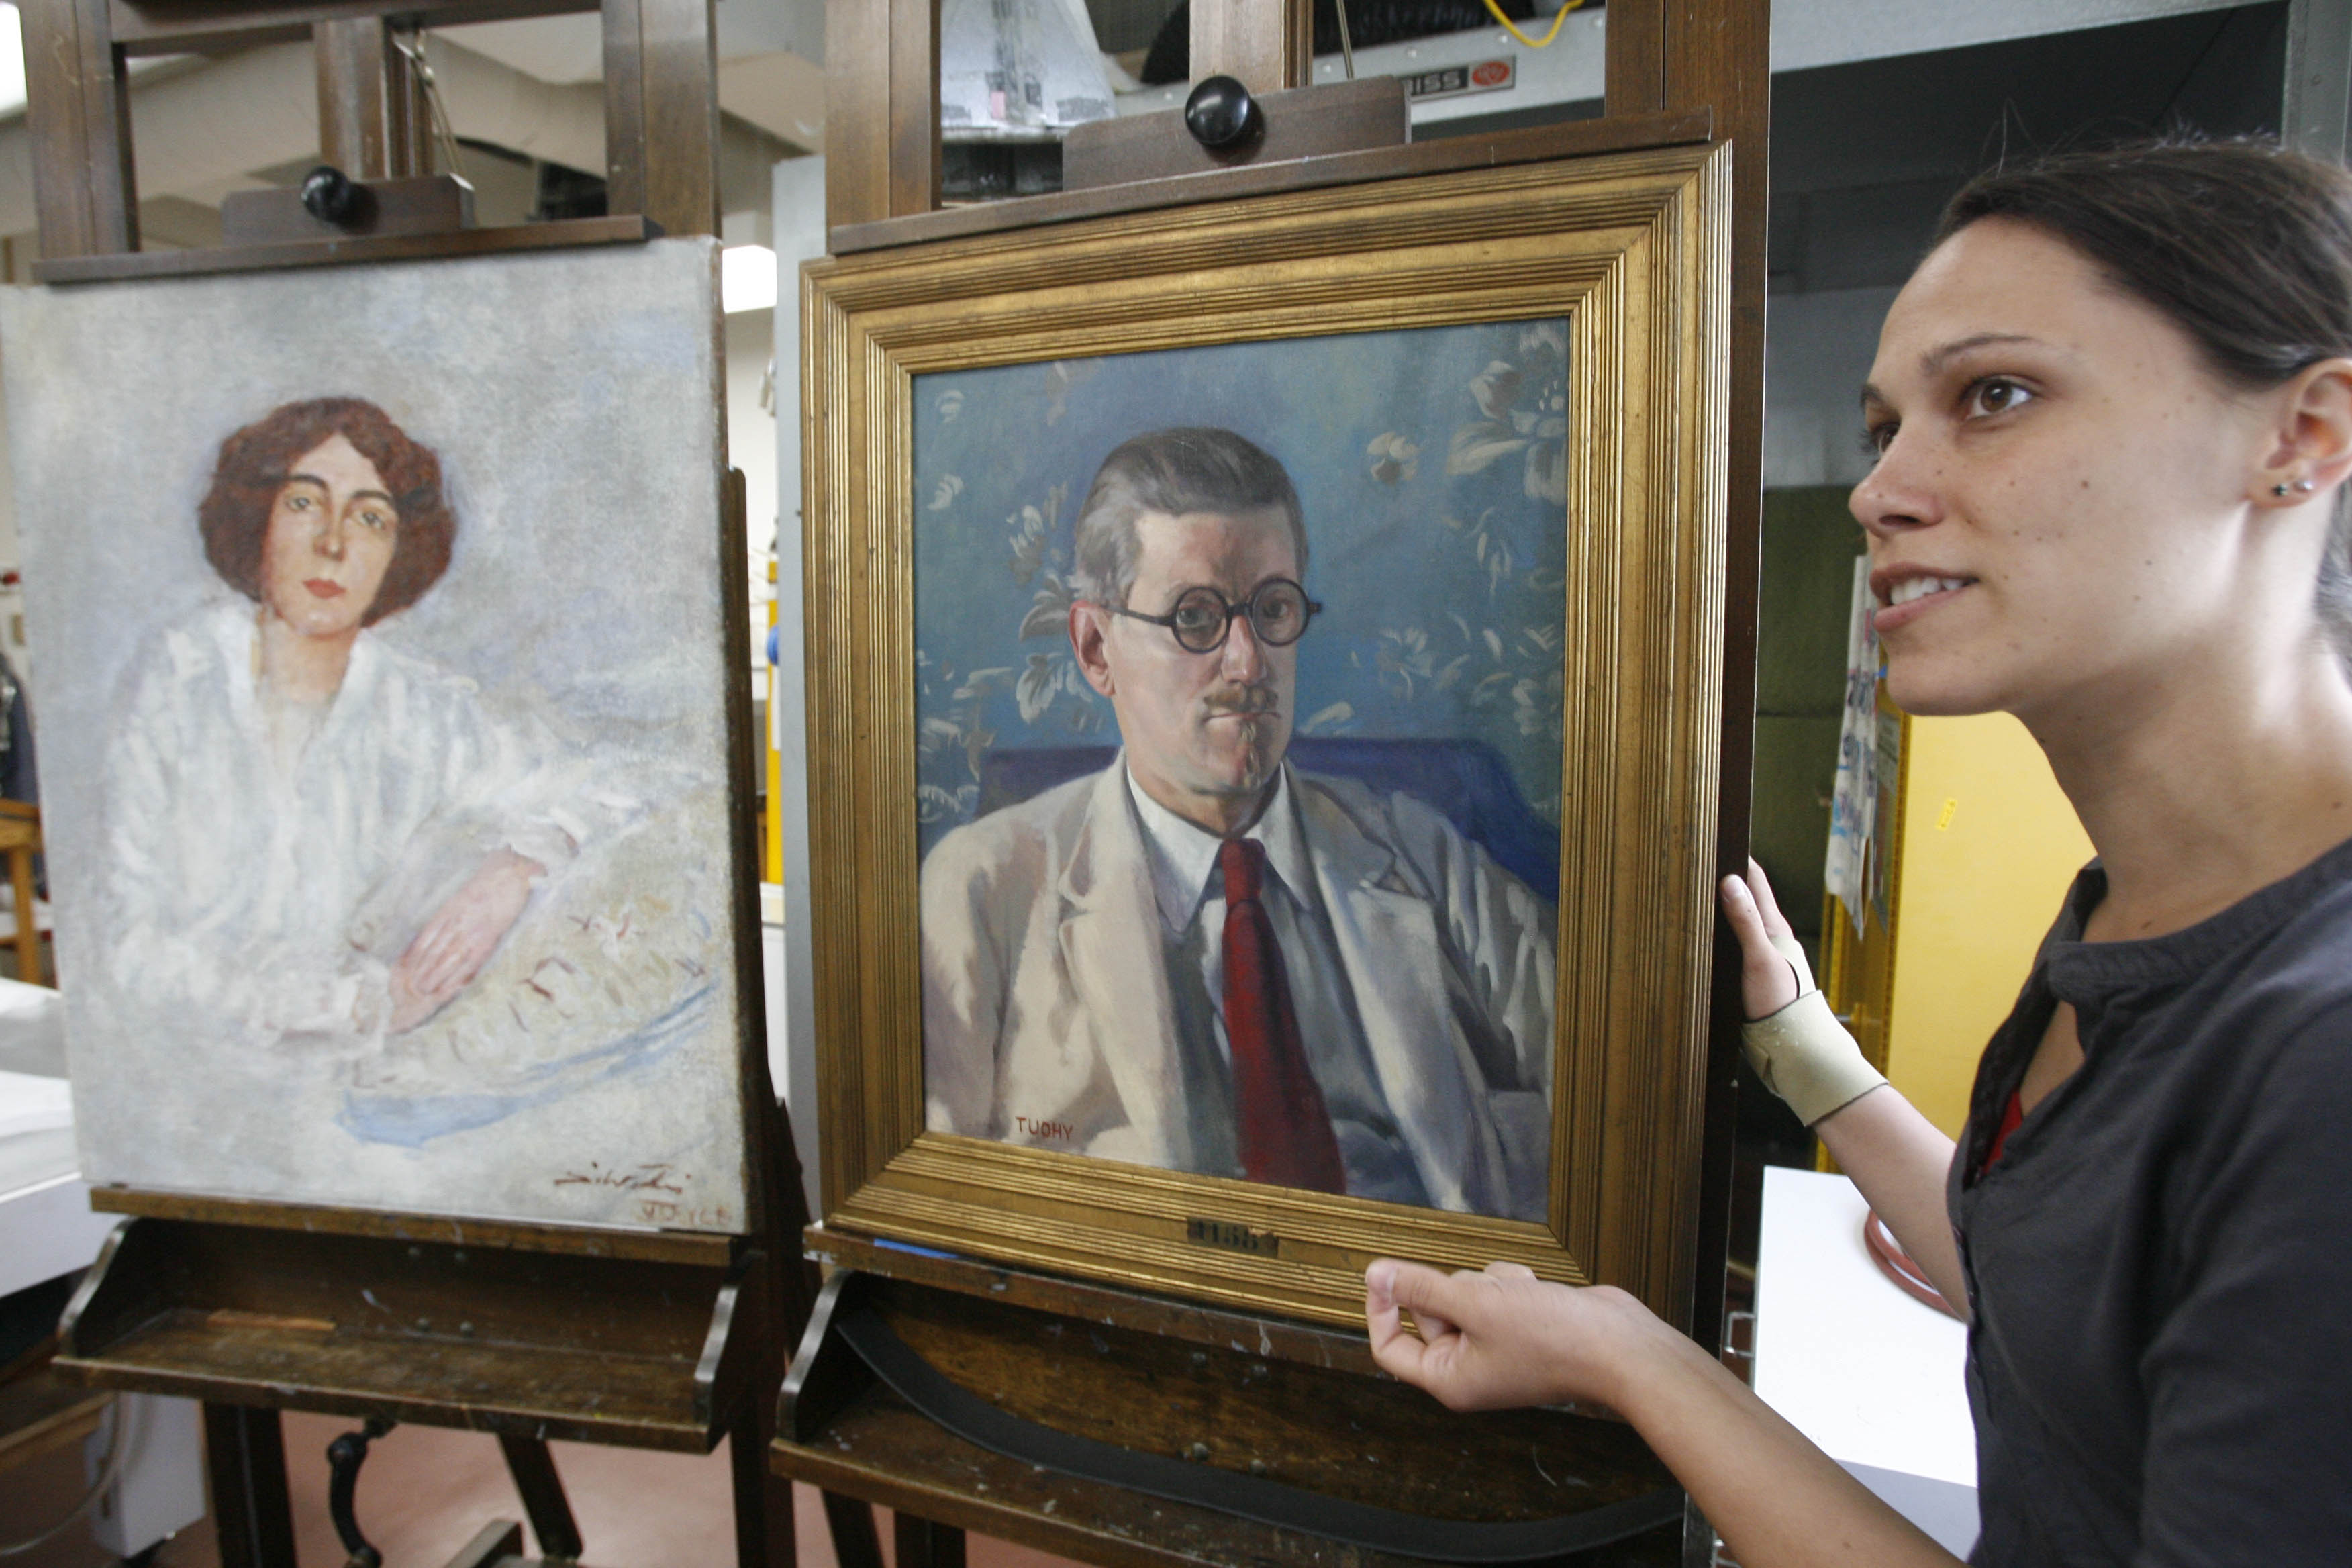 In 2008, Buffalo State College art conservation graduate student Katrina Bartlett explains the restoration work she did on paintings of author James Joyce and his wife Nora – two of nine paintings from Joyce's collection restored in the department. (Derek Gee/Buffalo News)